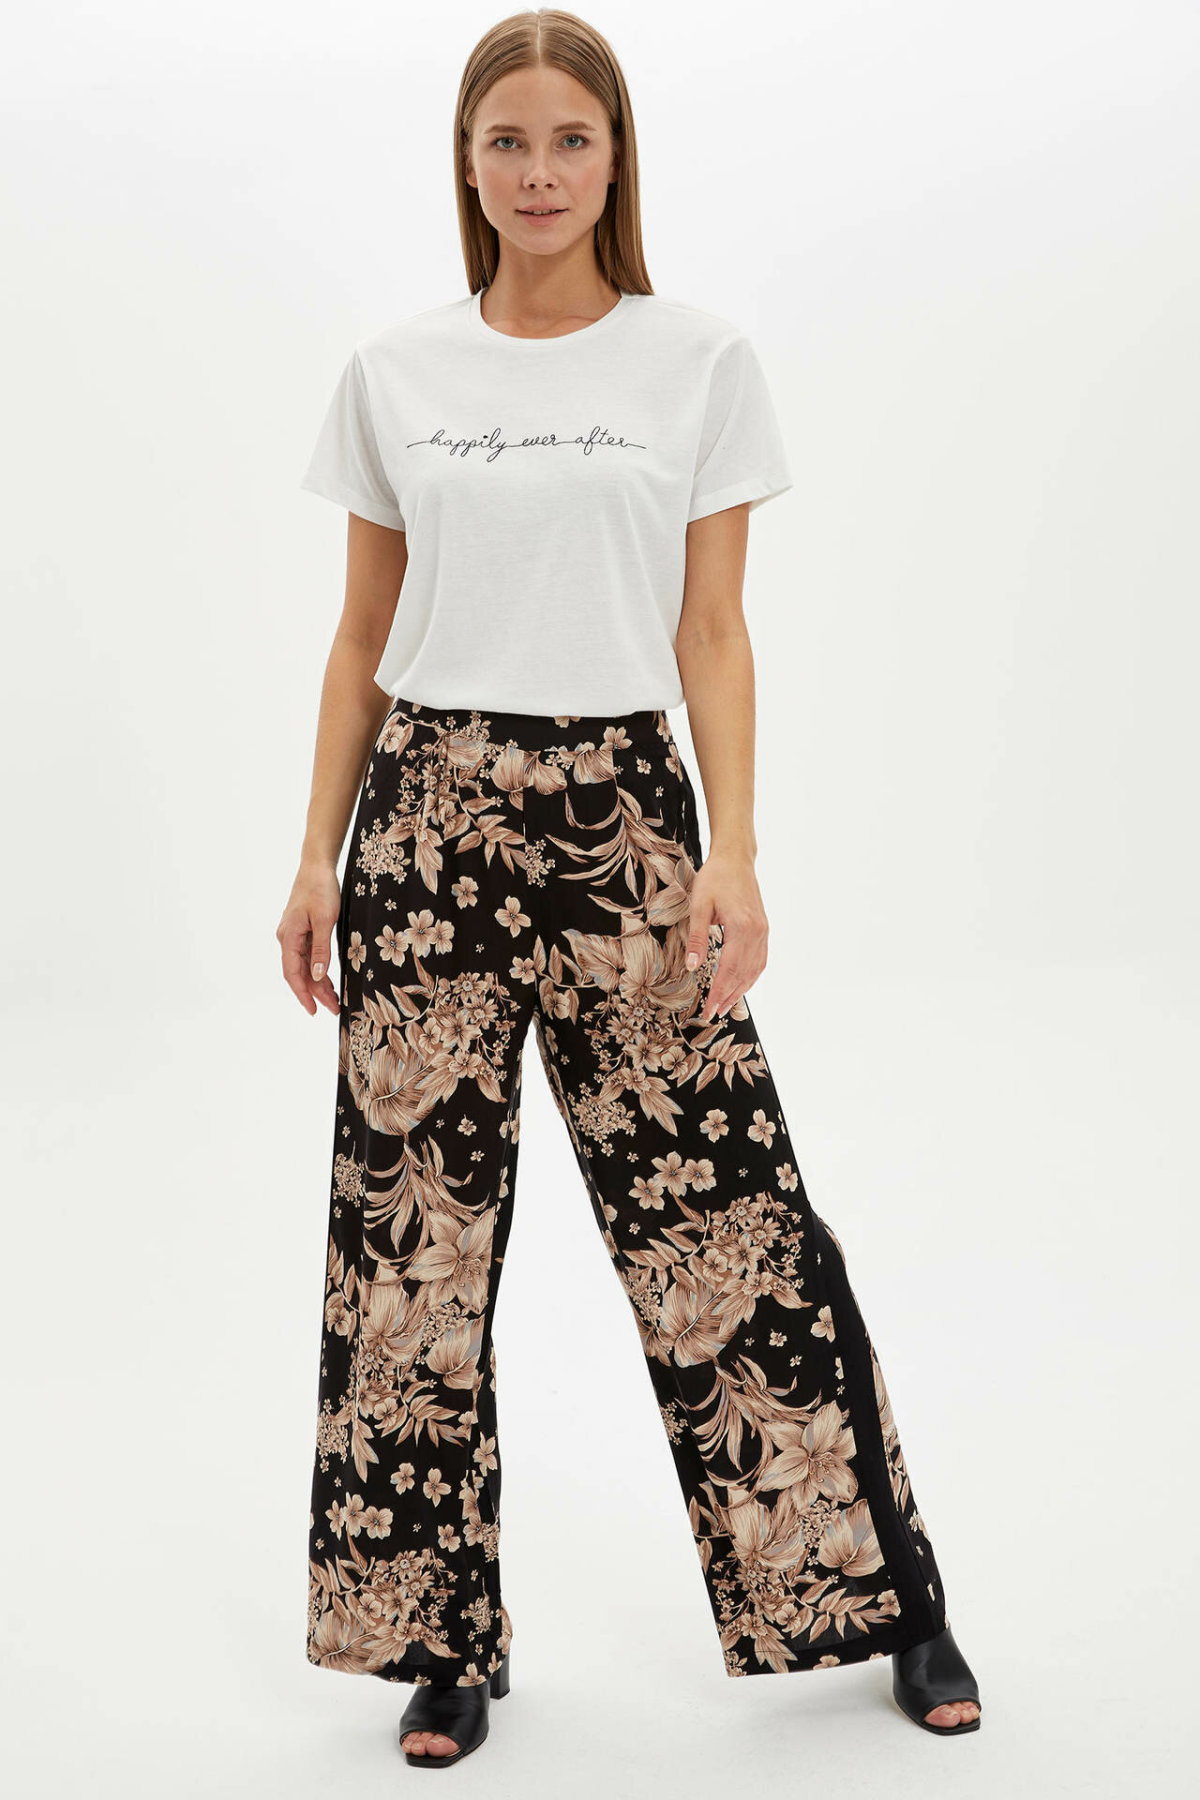 DeFacto Woman Summer Wide-leg Long Pants Female Floral Loose Bottoms Female Elastic Bottoms Woven Trousers-L7632AZ19HS